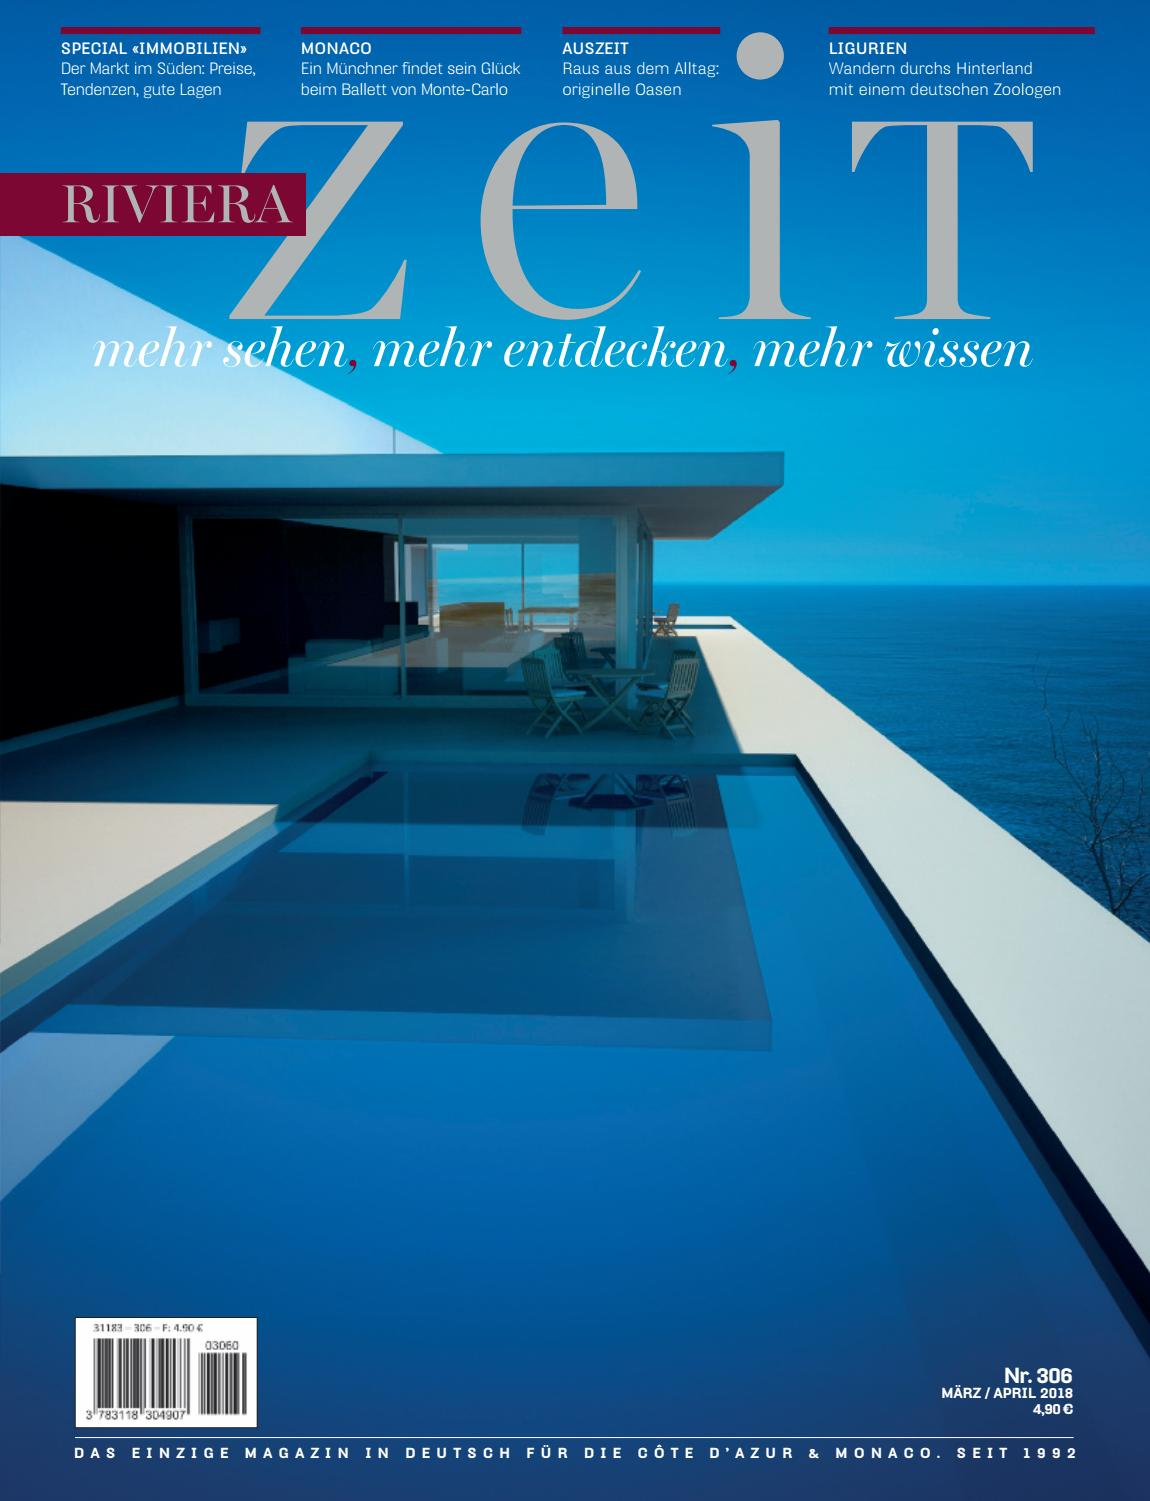 Riviera Zeit - März/April 2018 by Riviera Press - issuu